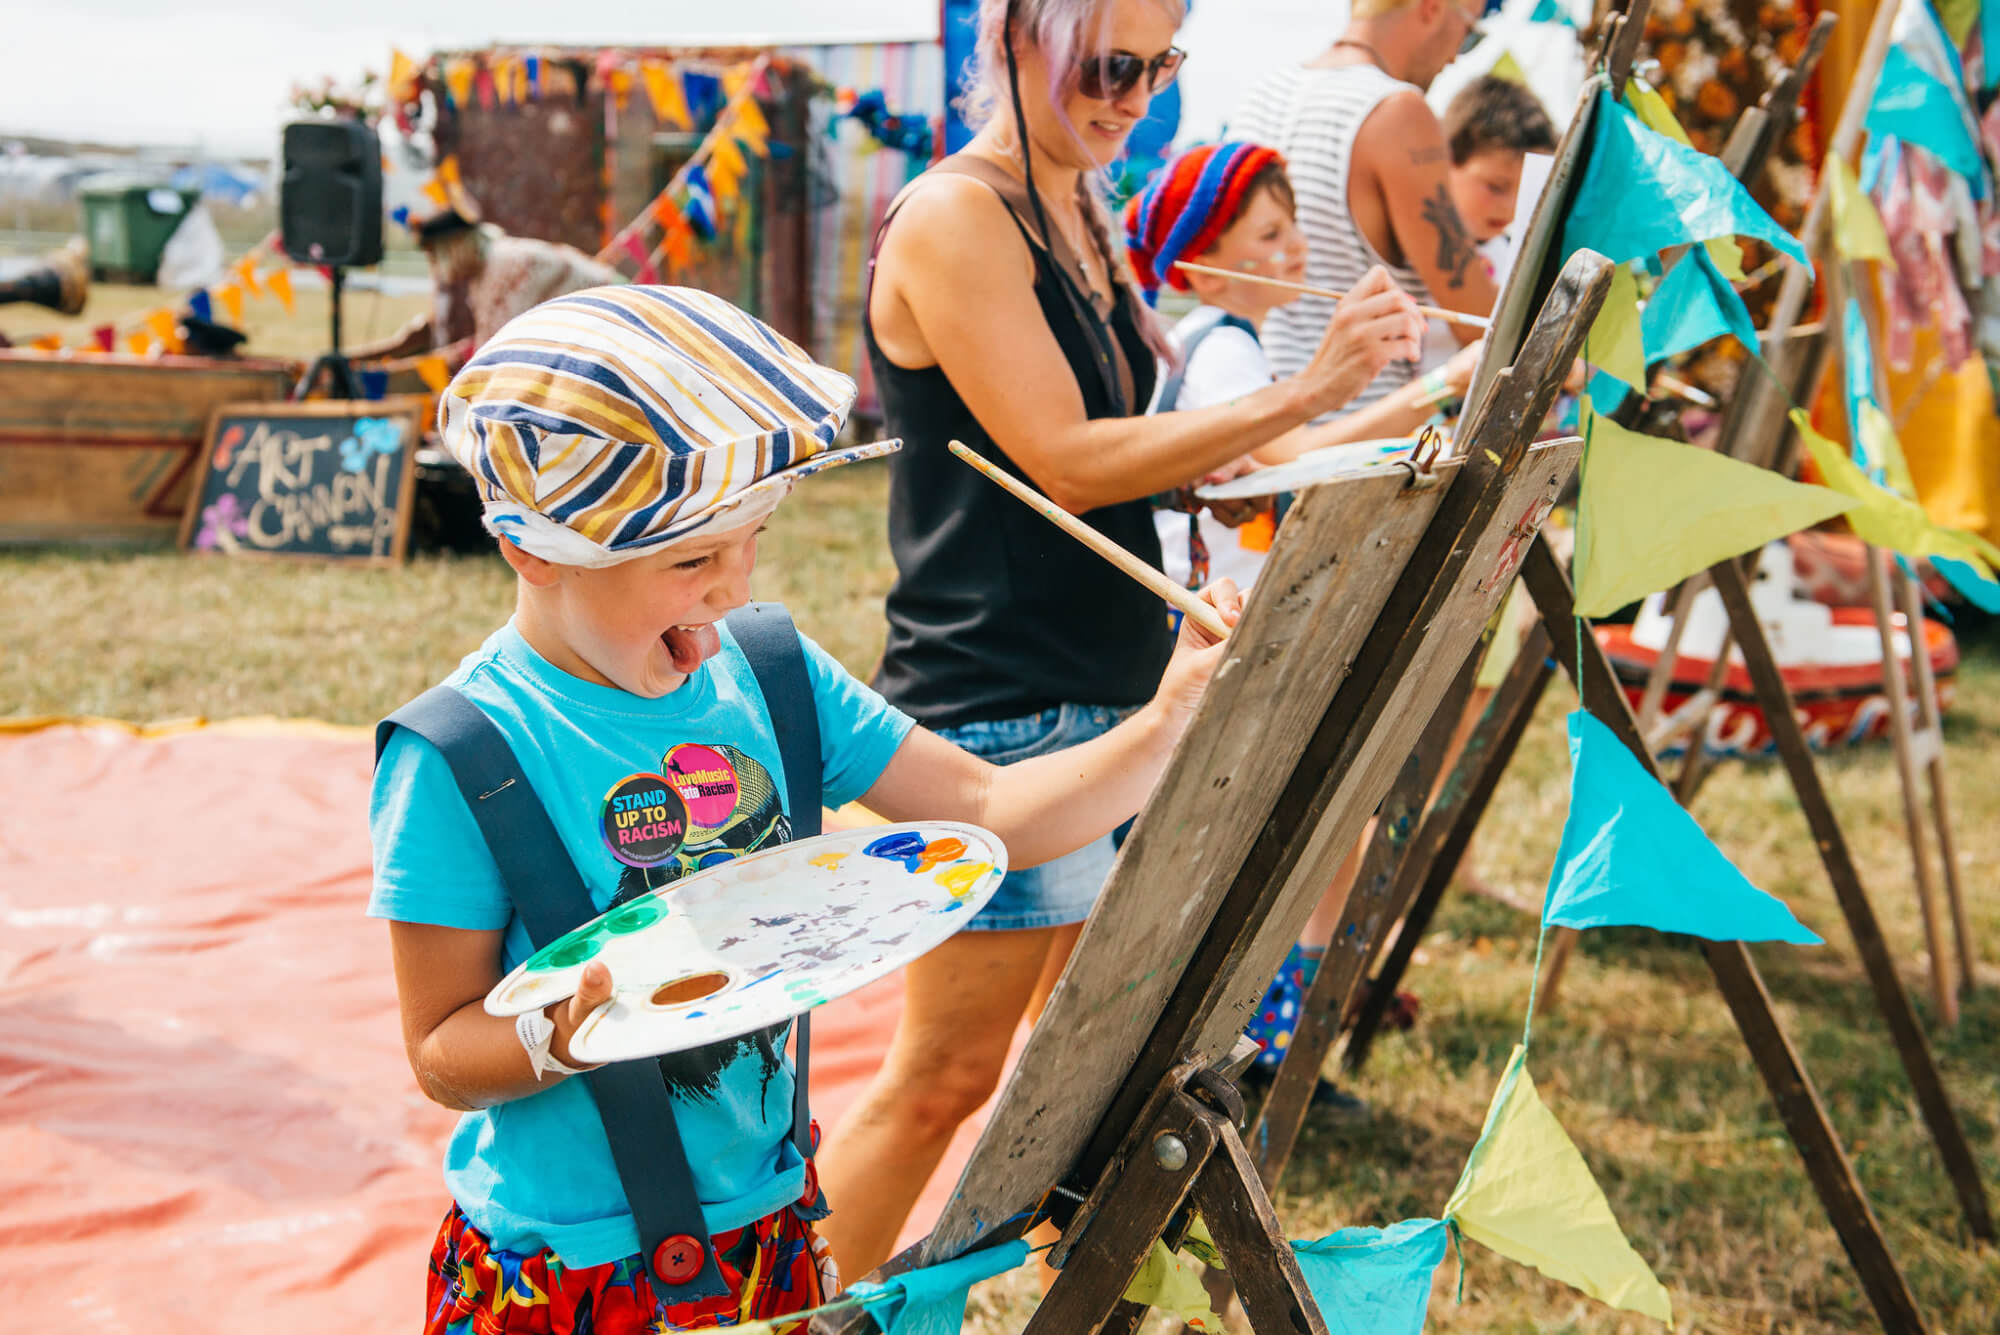 8 REASONS YOUR KIDS WILL LOVE Y NOT FESTIVAL